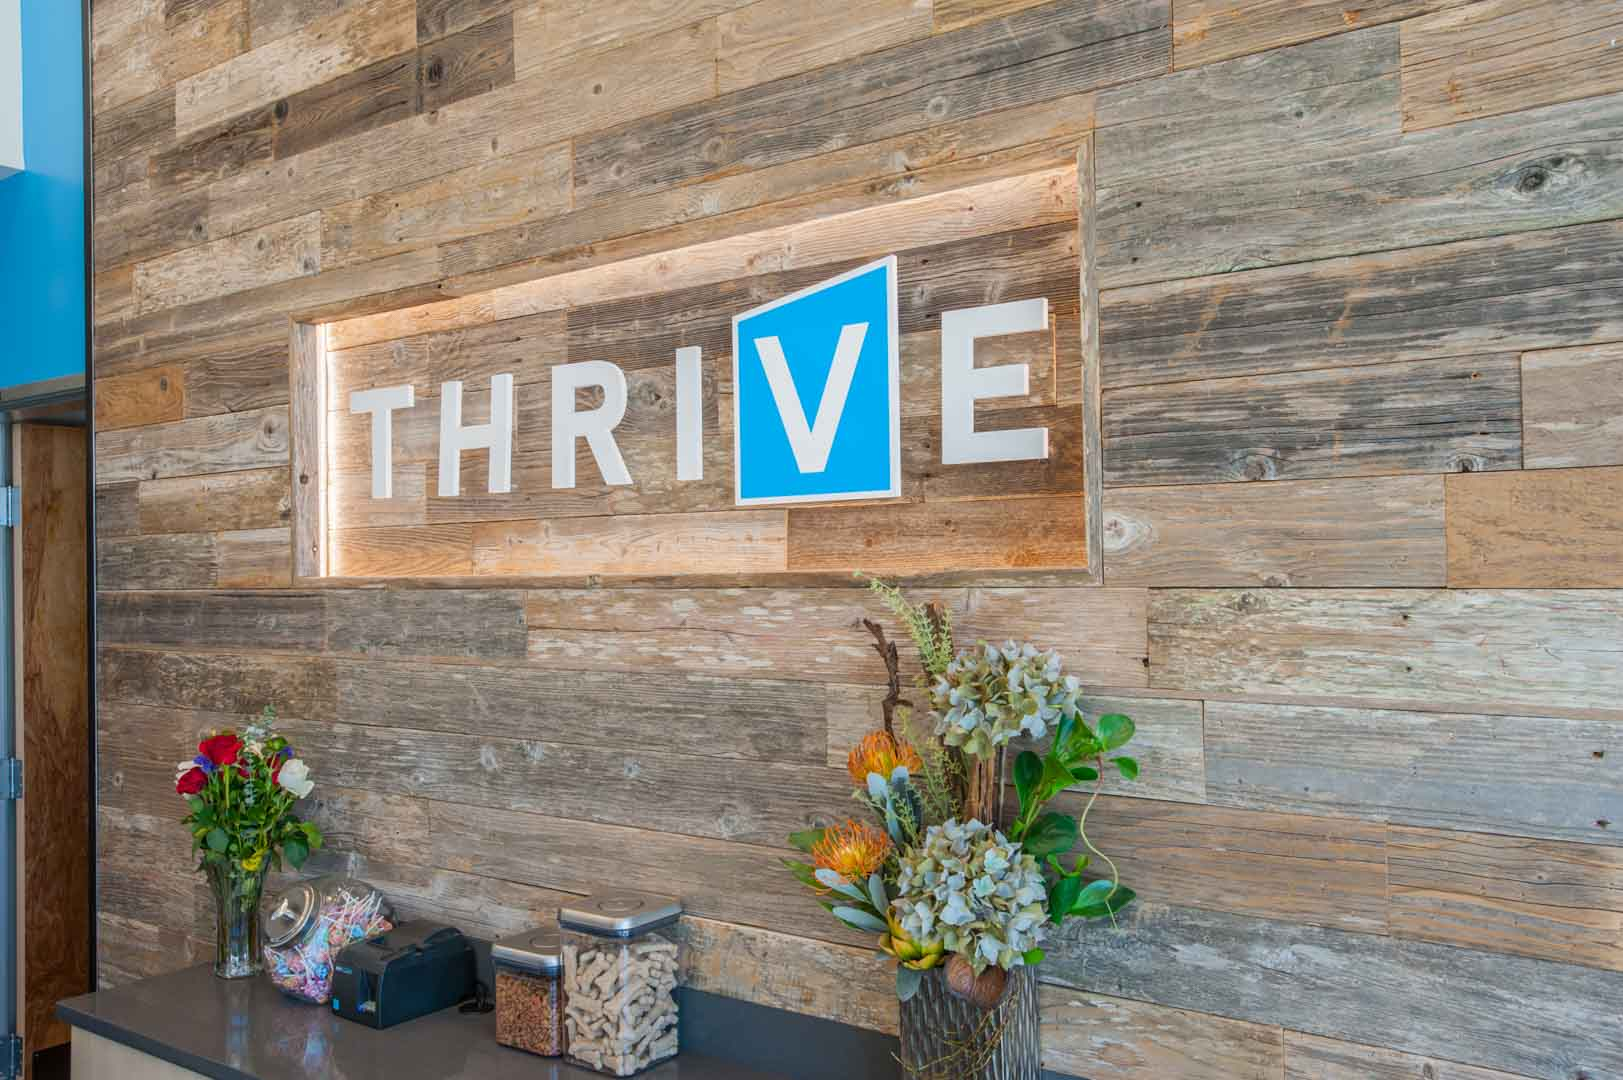 Thrive Veterinary Office - Kissimmee FL - Mike Martin-05.jpg